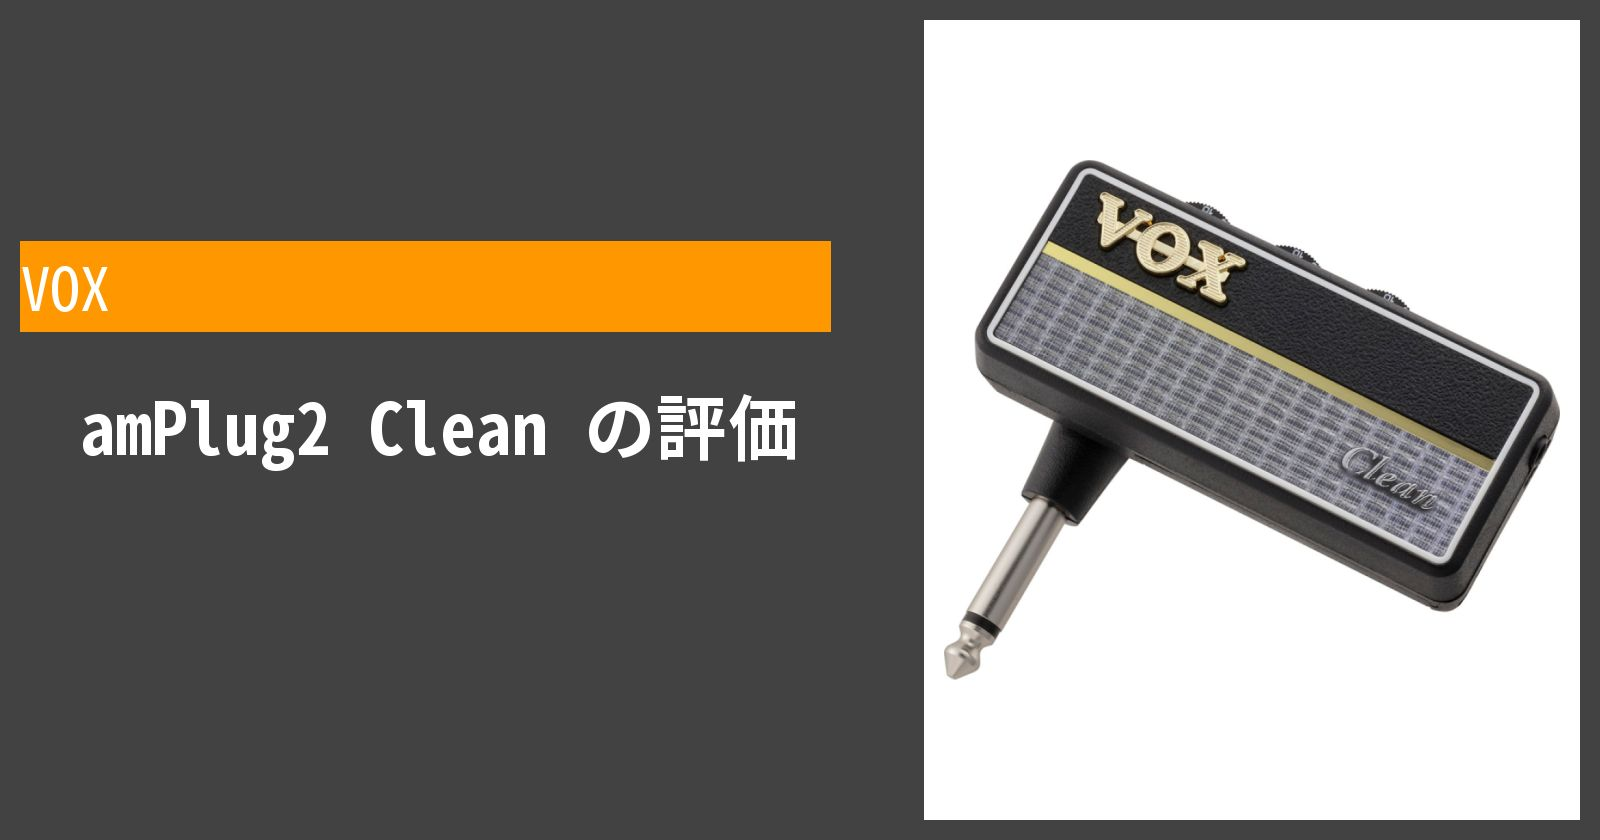 amPlug2 Cleanを徹底評価